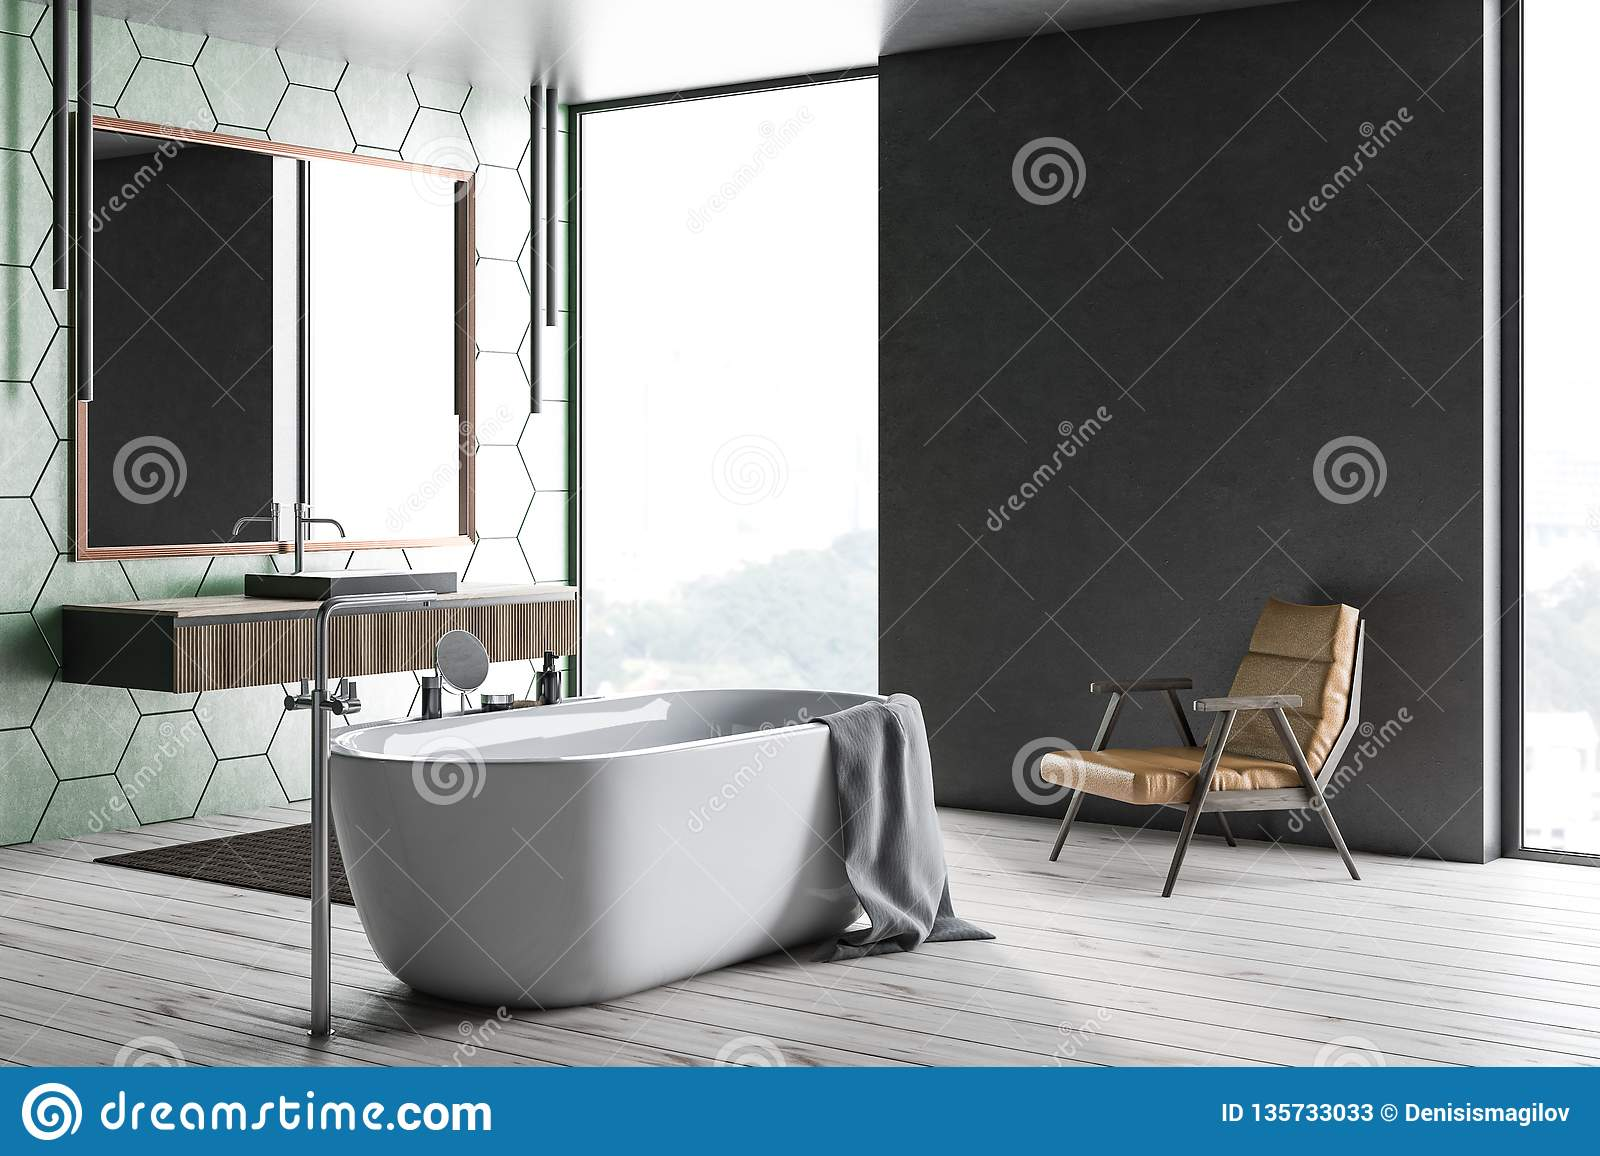 Green Tile And Gray Bathroom Tub And Sink Stock